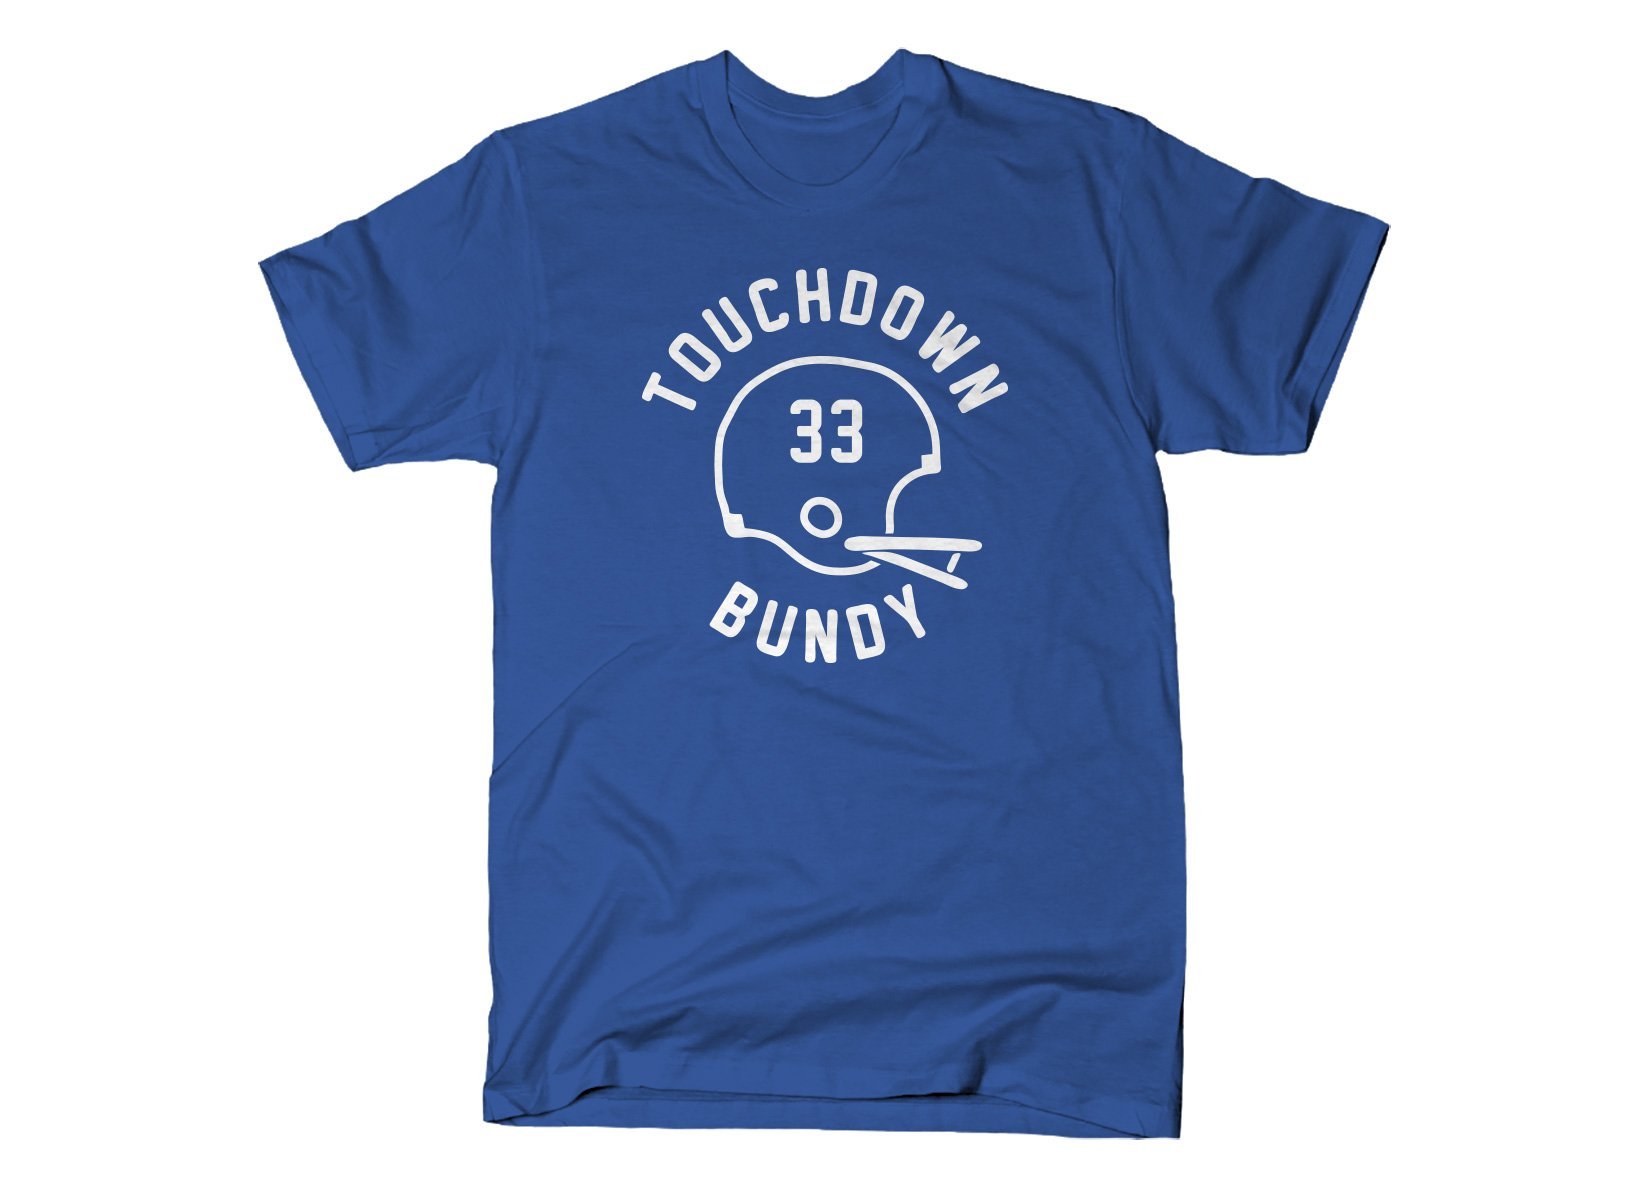 Touchdown Bundy on Mens T-Shirt